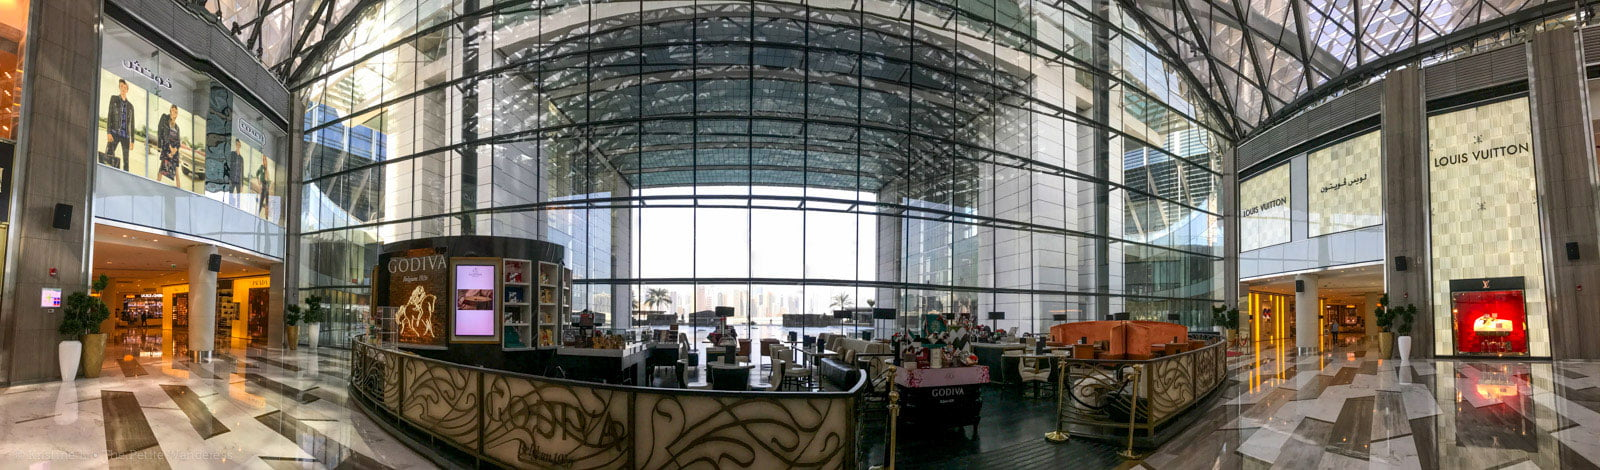 The Galleria, Abu Dhabi • First impressions visiting Abu Dhabi